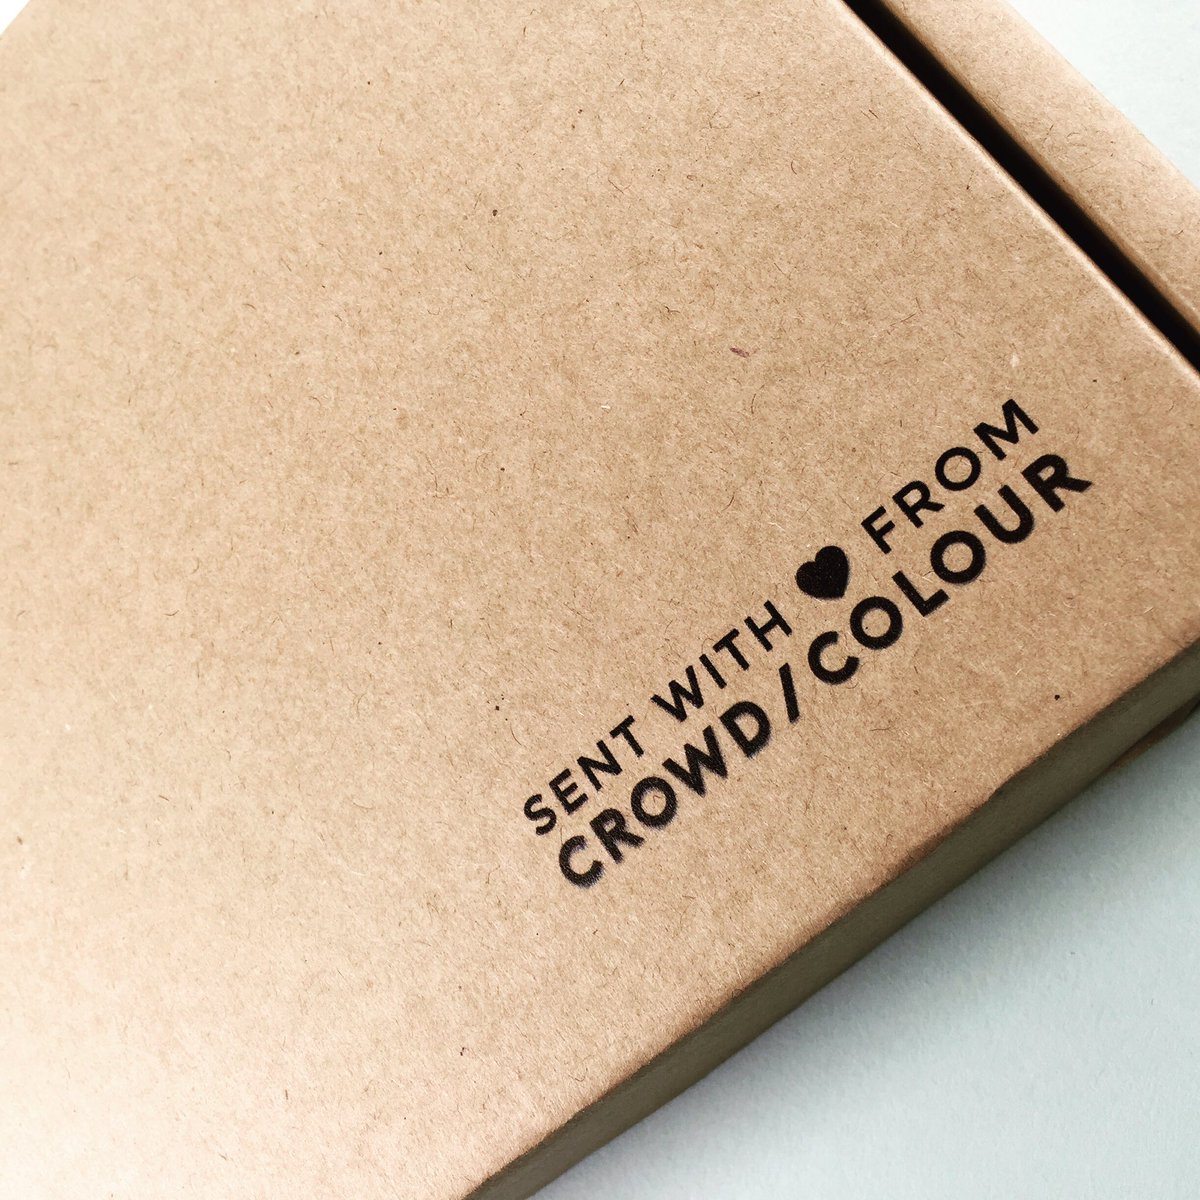 Crowd Colour on Twitter: